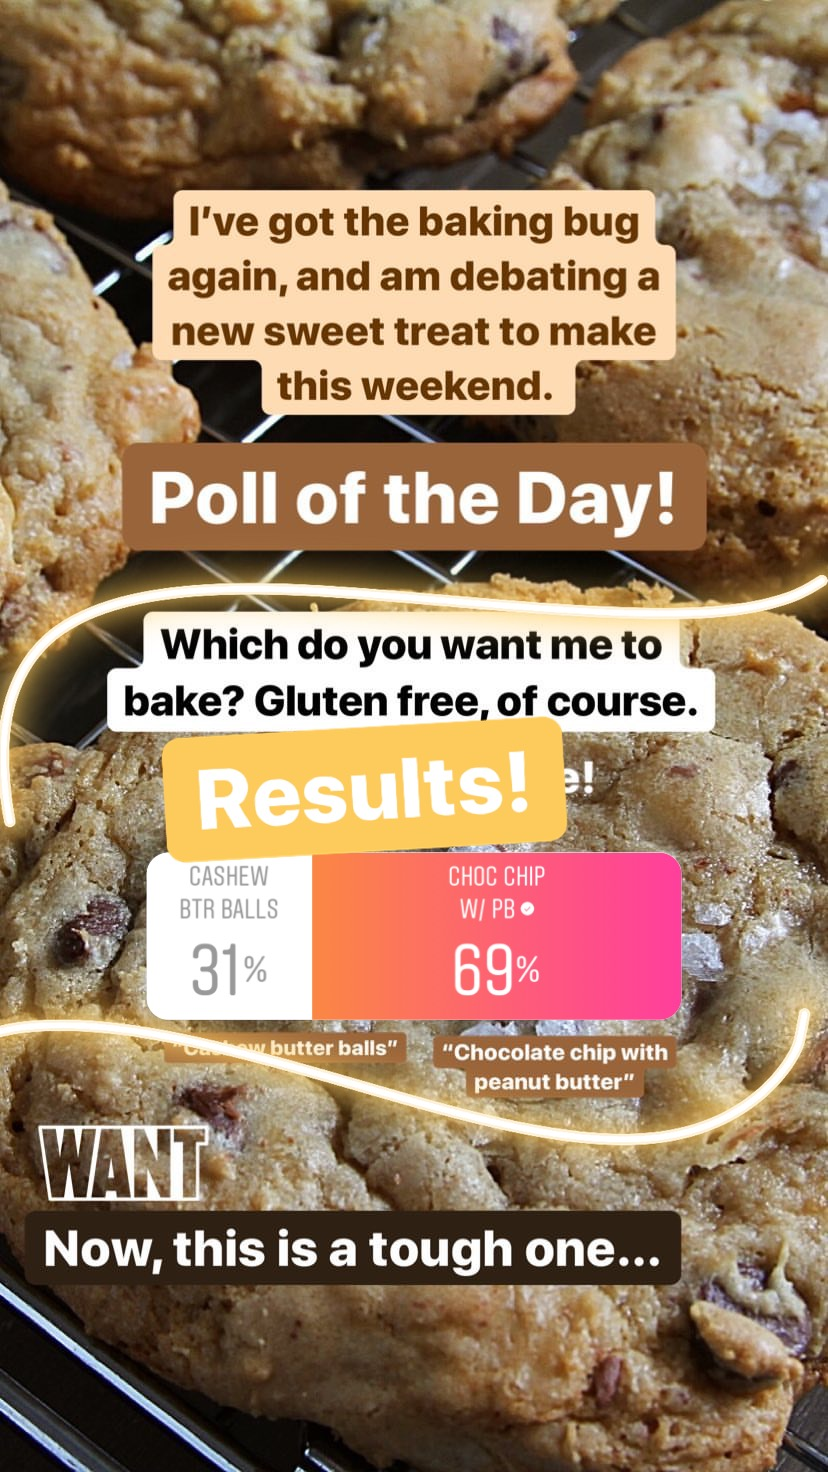 Once again, there's really no contest, although I was really hoping more than 31% of you would be interested in the cashew butter balls! I certainly am and that's why I will be making them. However, have no fear Chocolate chip cookie fans, I am going to bake both!! This coming weekend, we are going to do the chocolate chip and peanut butter cookies, and then for Christmas I am going to try my luck at those cashew butter balls. See? Everyone wins! But I was quite impressed with the numbers flying high for the peanut butter; you guys love it! Let's get baking. :)